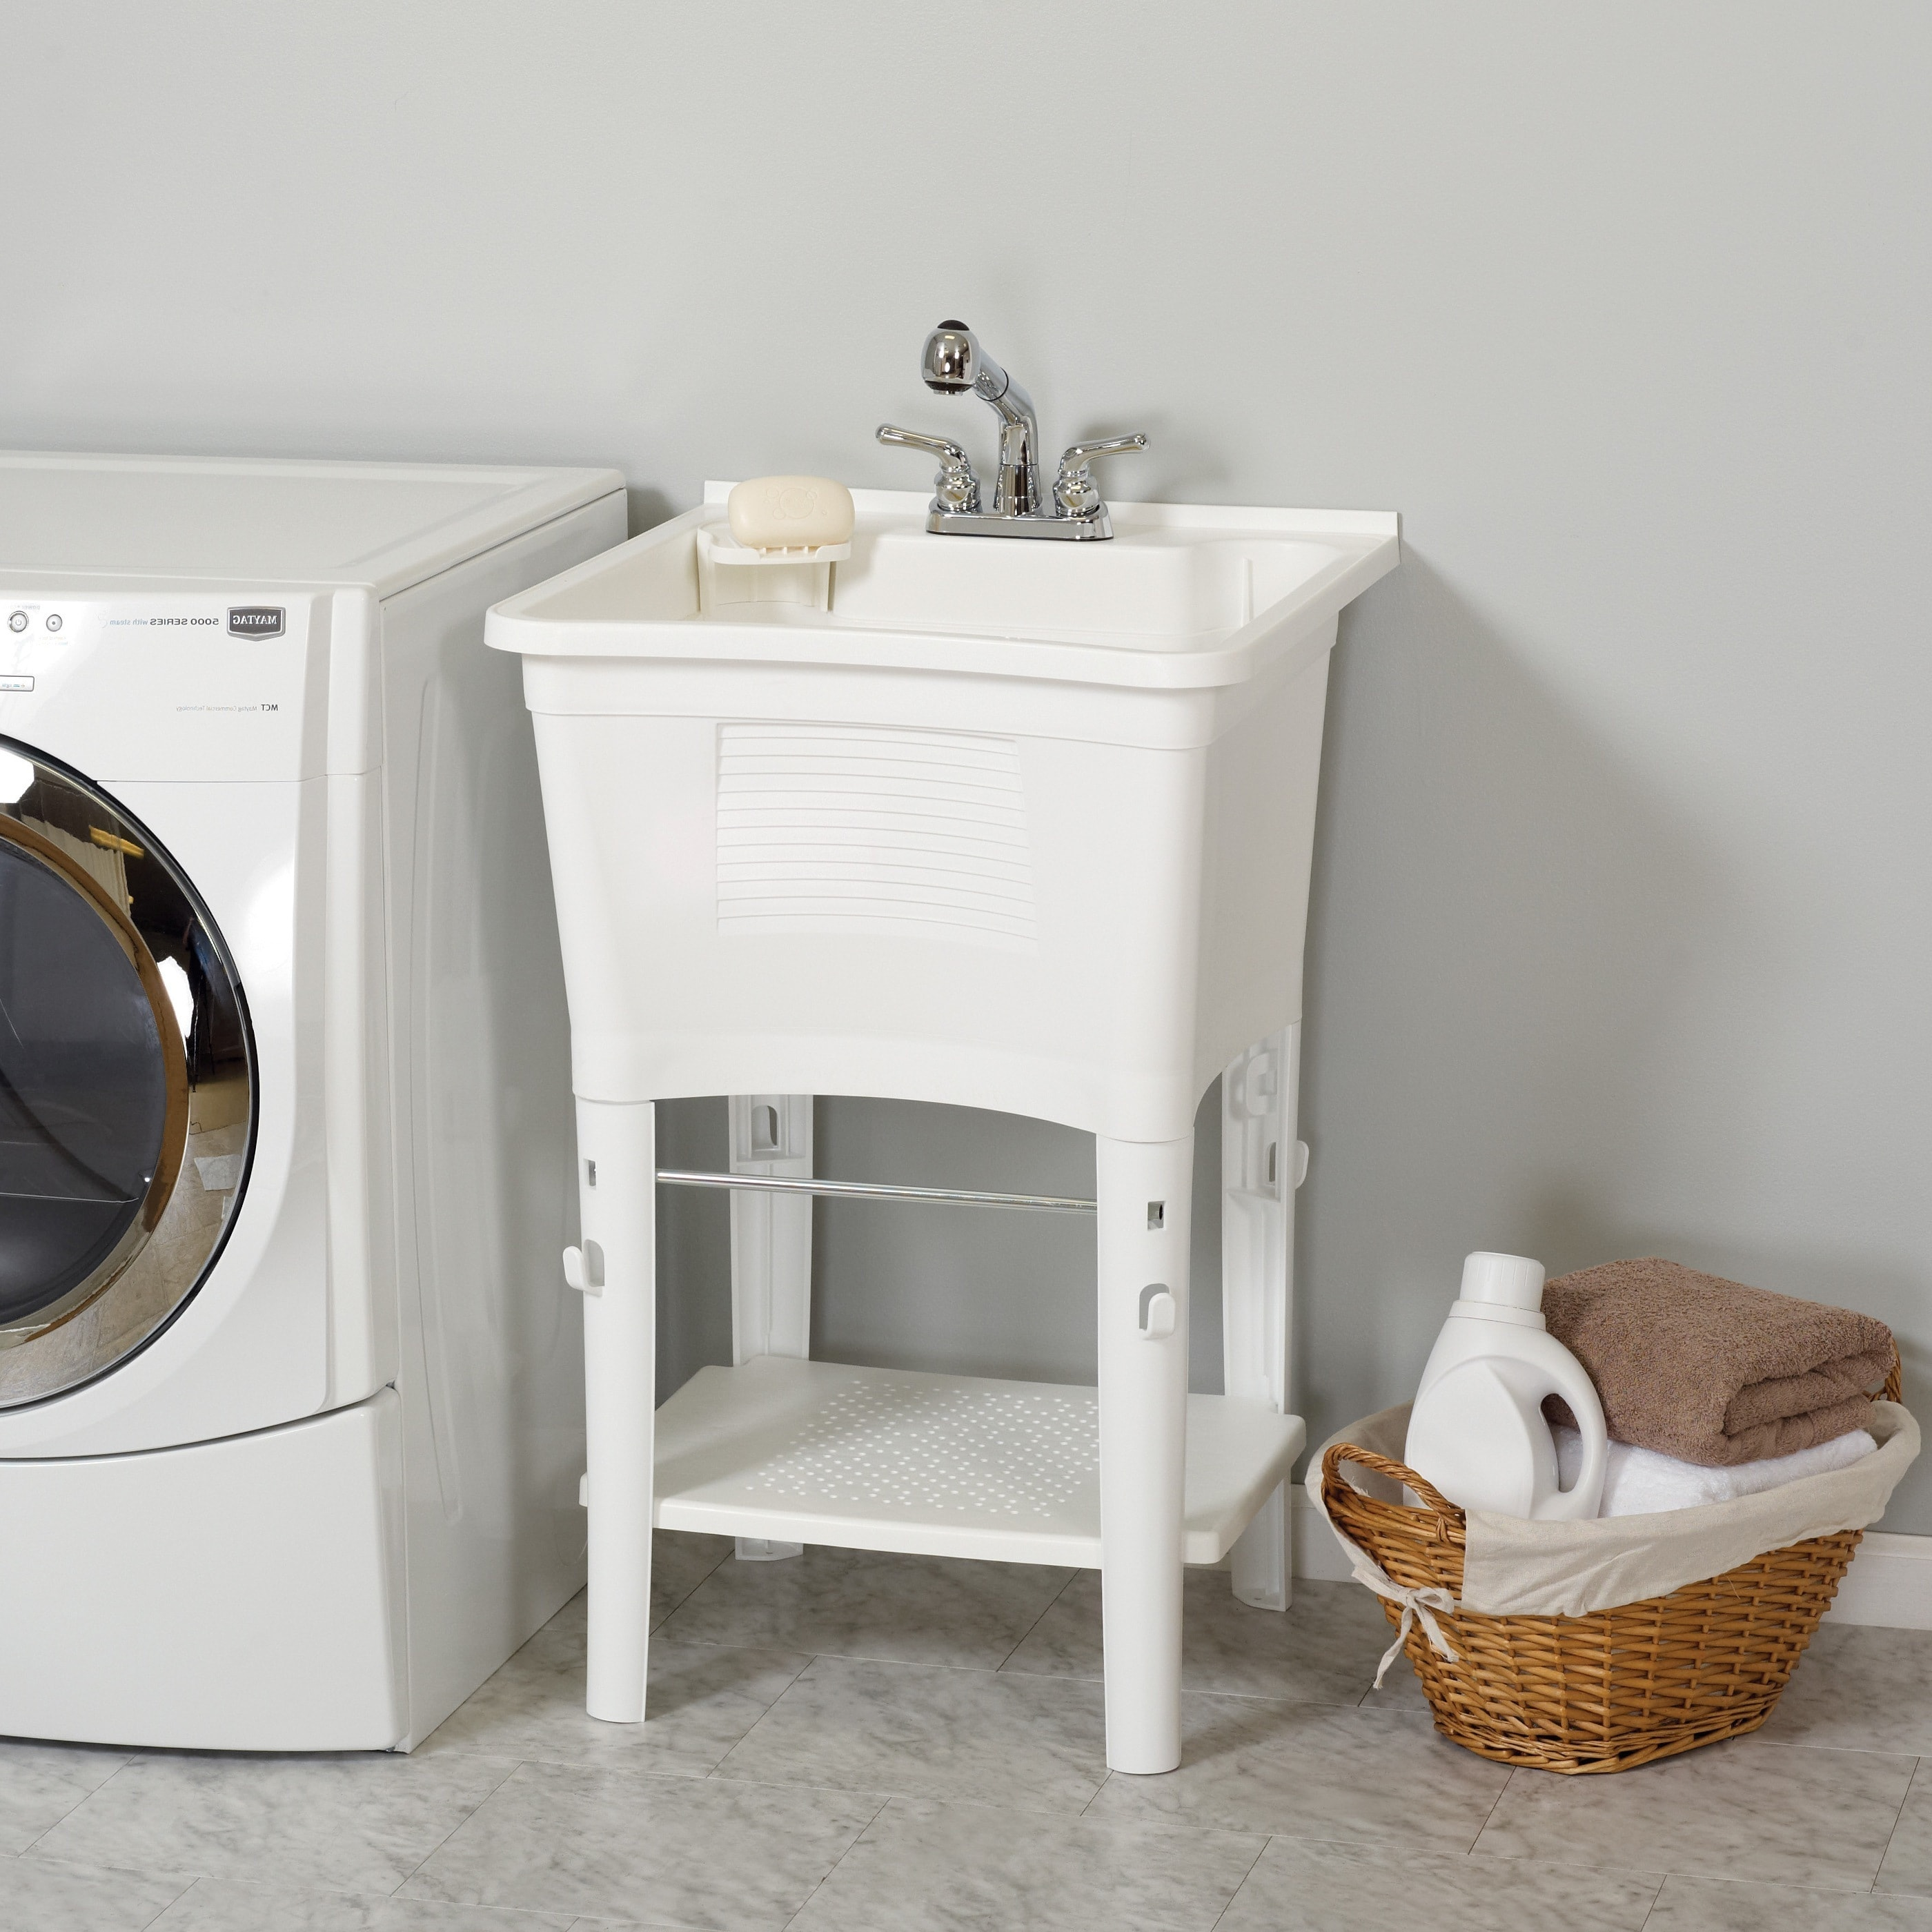 Charmant Shop Zenith Ergo Tub Complete, Freestanding Utility Laundry Sink Kit   Free  Shipping Today   Overstock.com   9956462